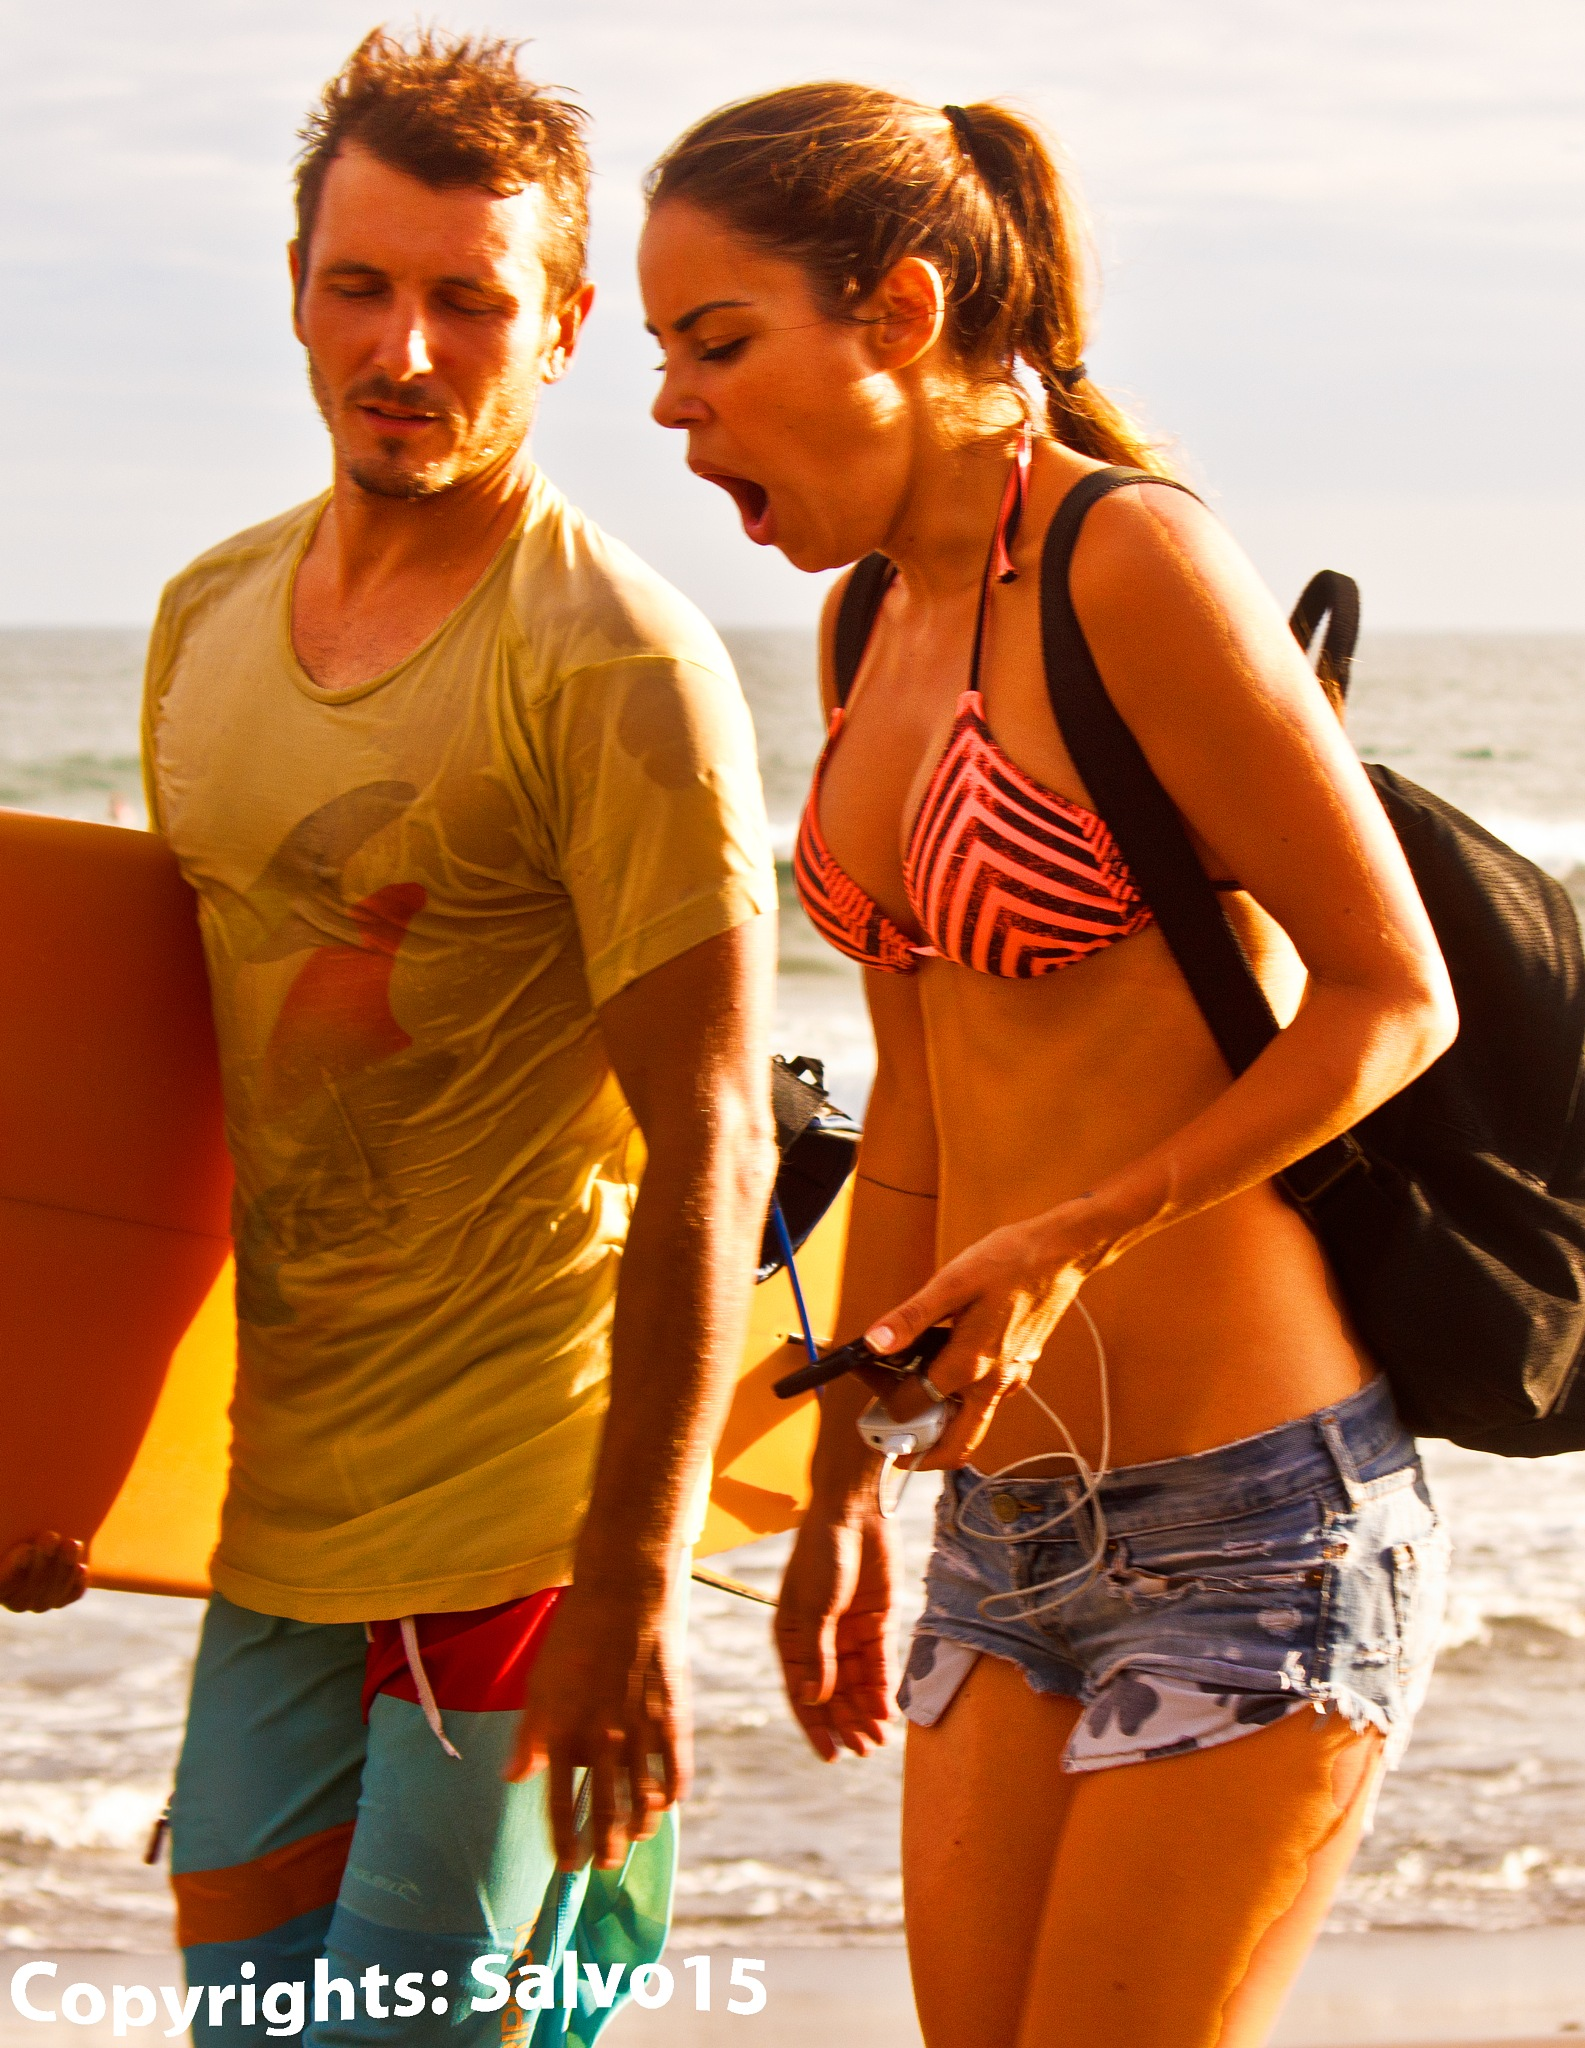 Couple and the Idea of Surfing by Salvo